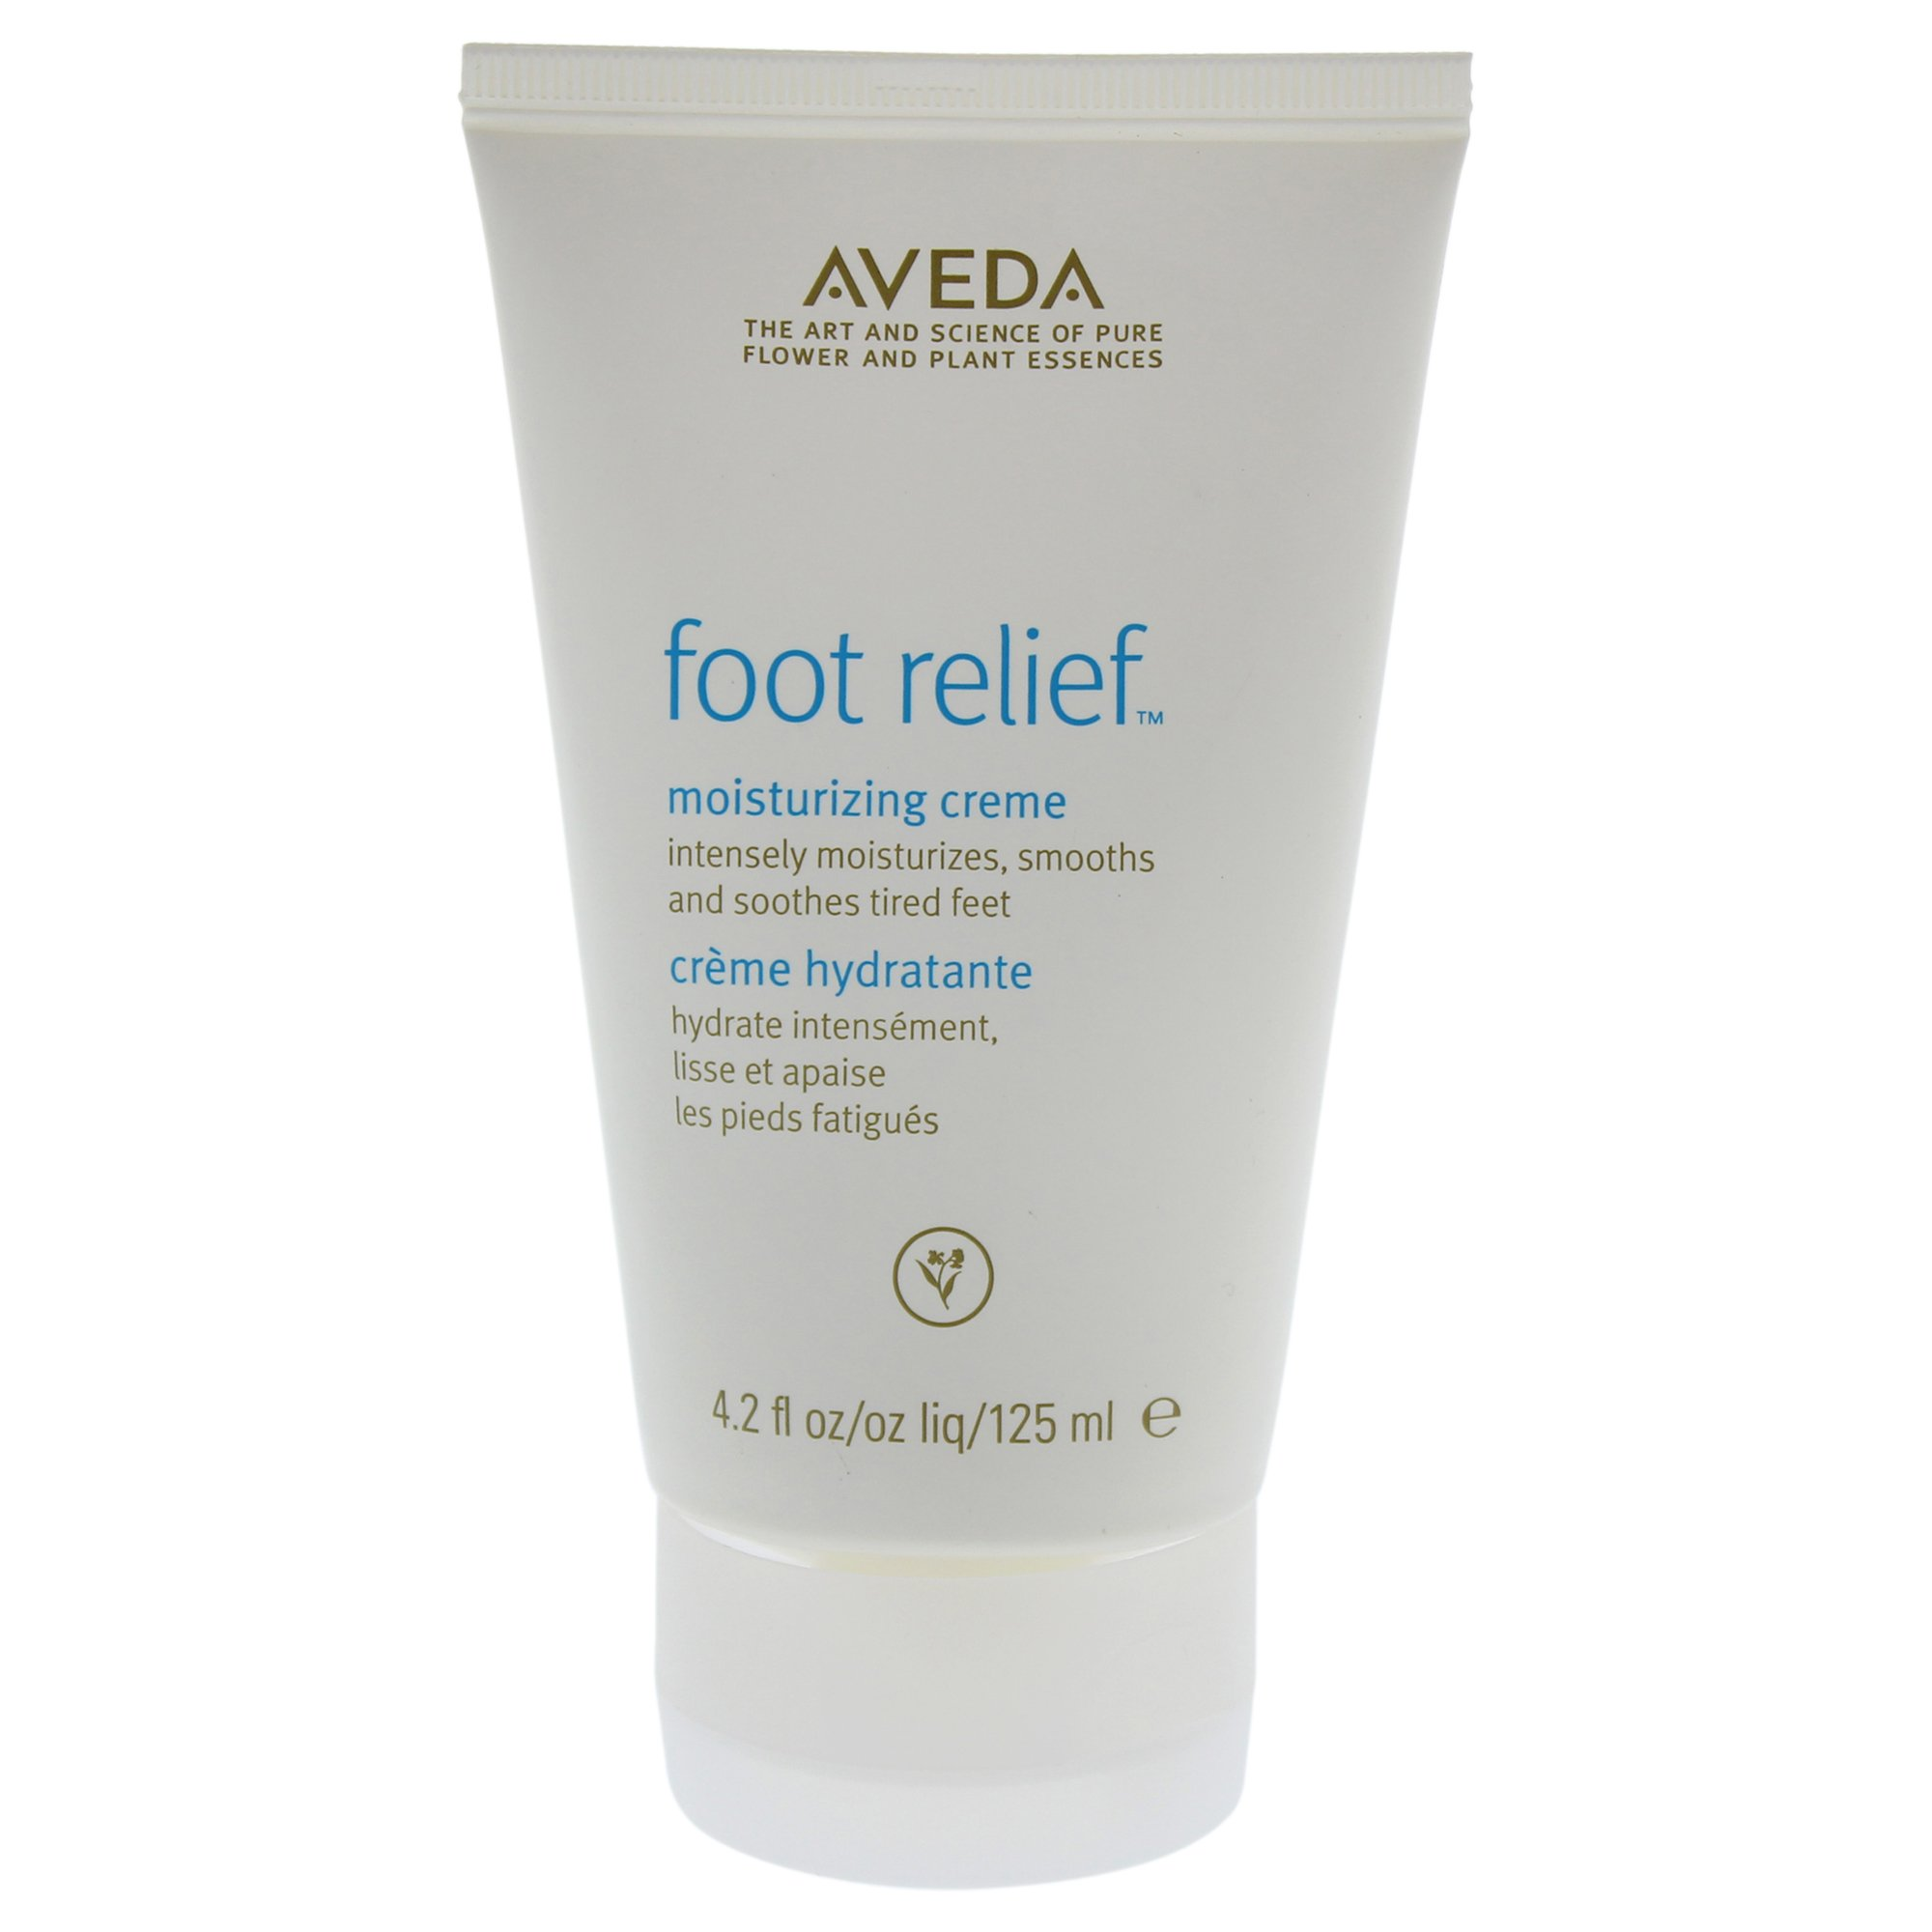 Aveda Foot Relief 4.2 oz/125ml